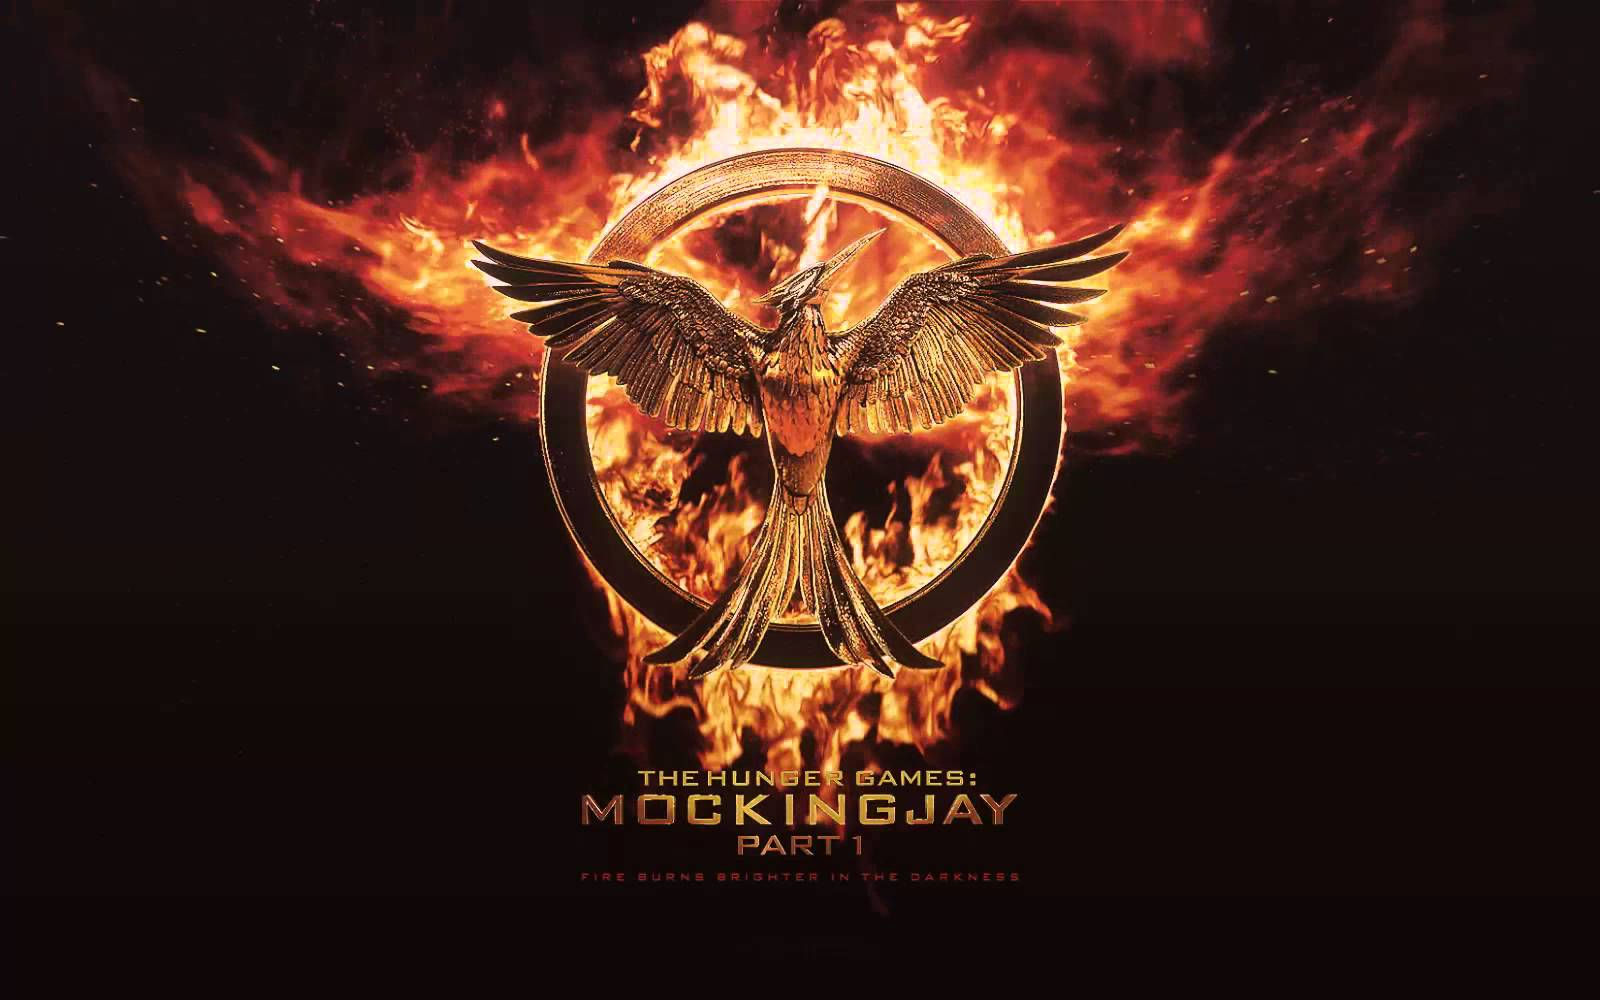 'Hunger Games: Mockingjay' Trailer: Watch Full Video From Comic-Con 2014 Here